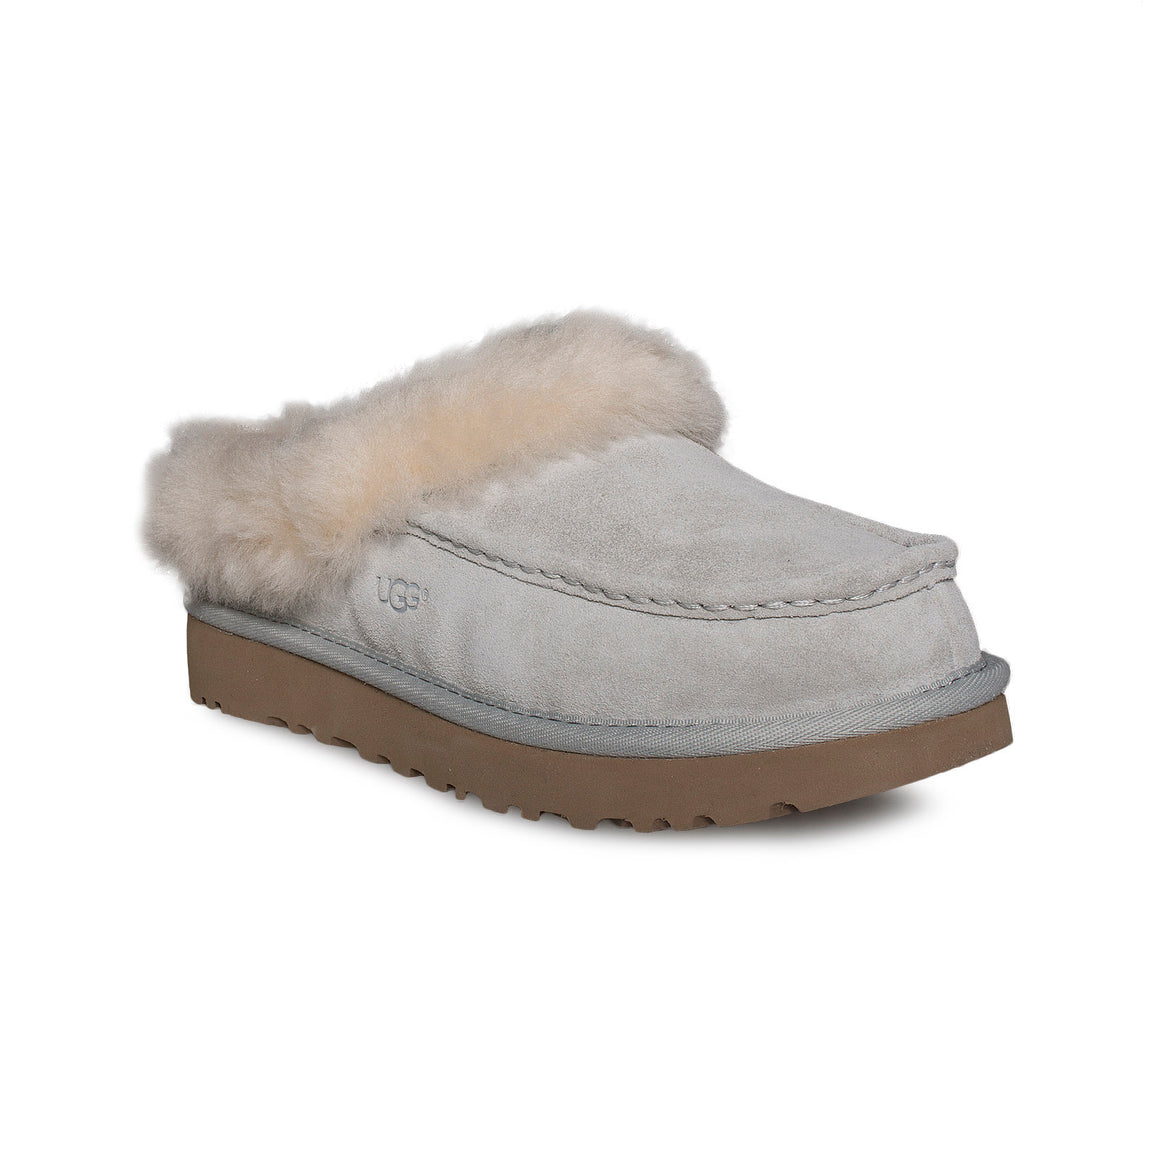 UGG Grove Grey Violet Slippers - Women's